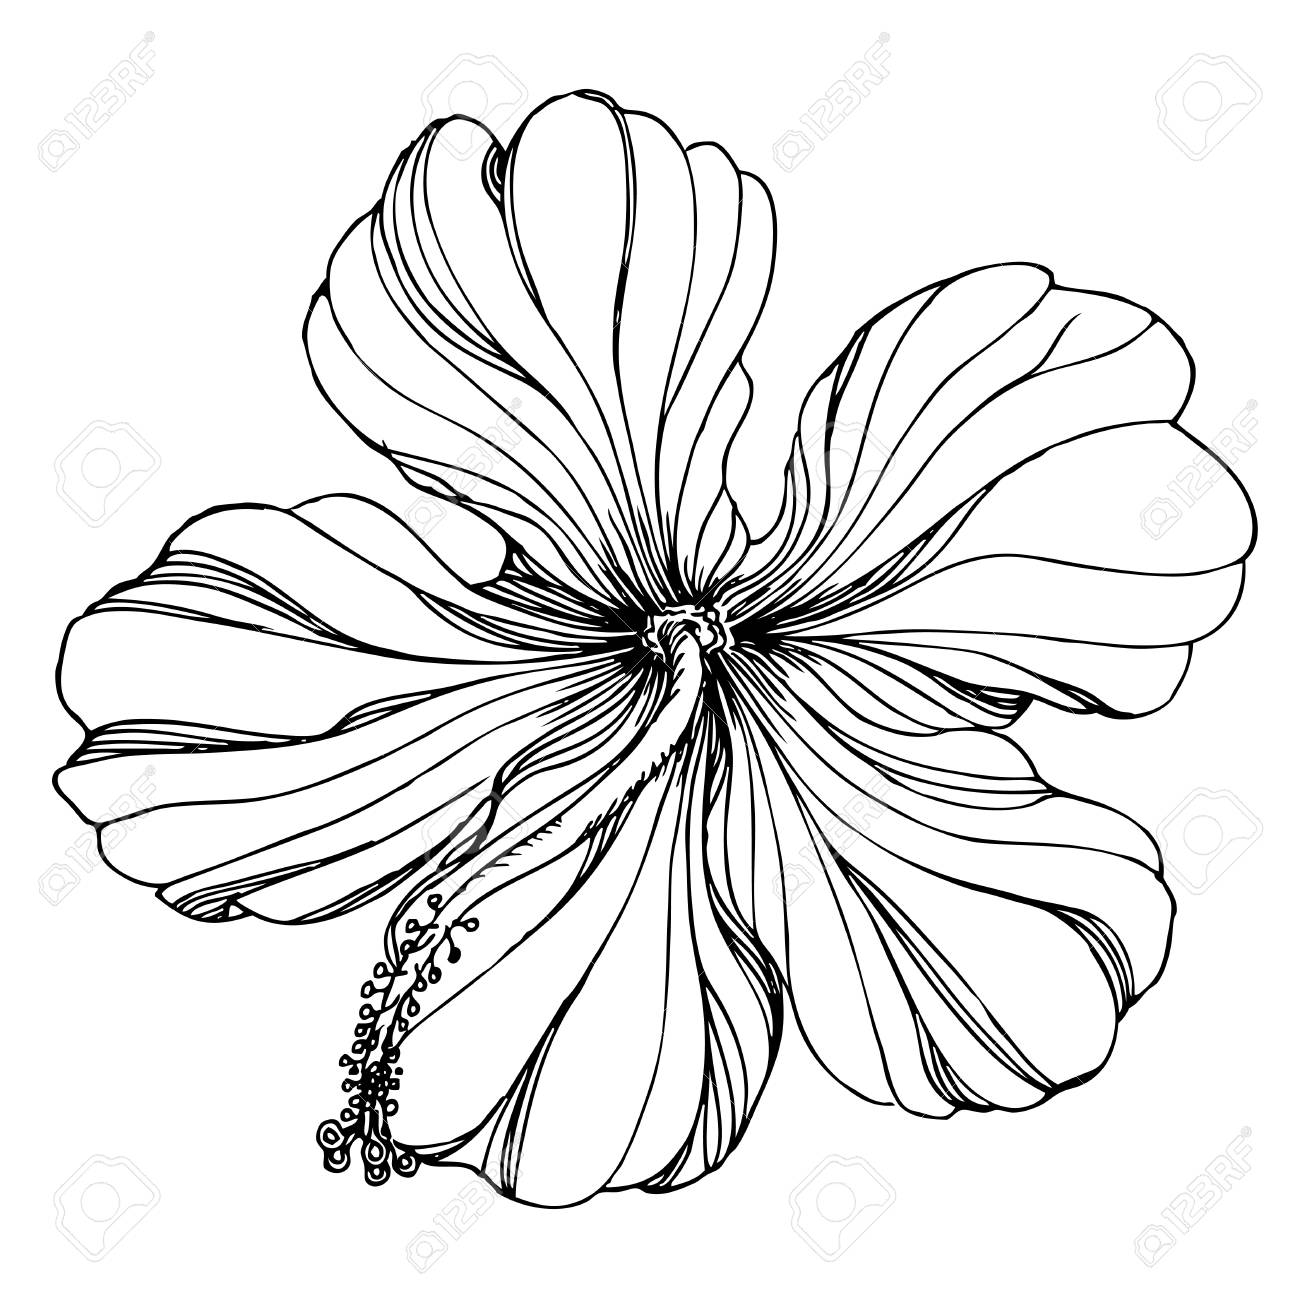 Black and white Hand drawn floral ornament with hibiscus.